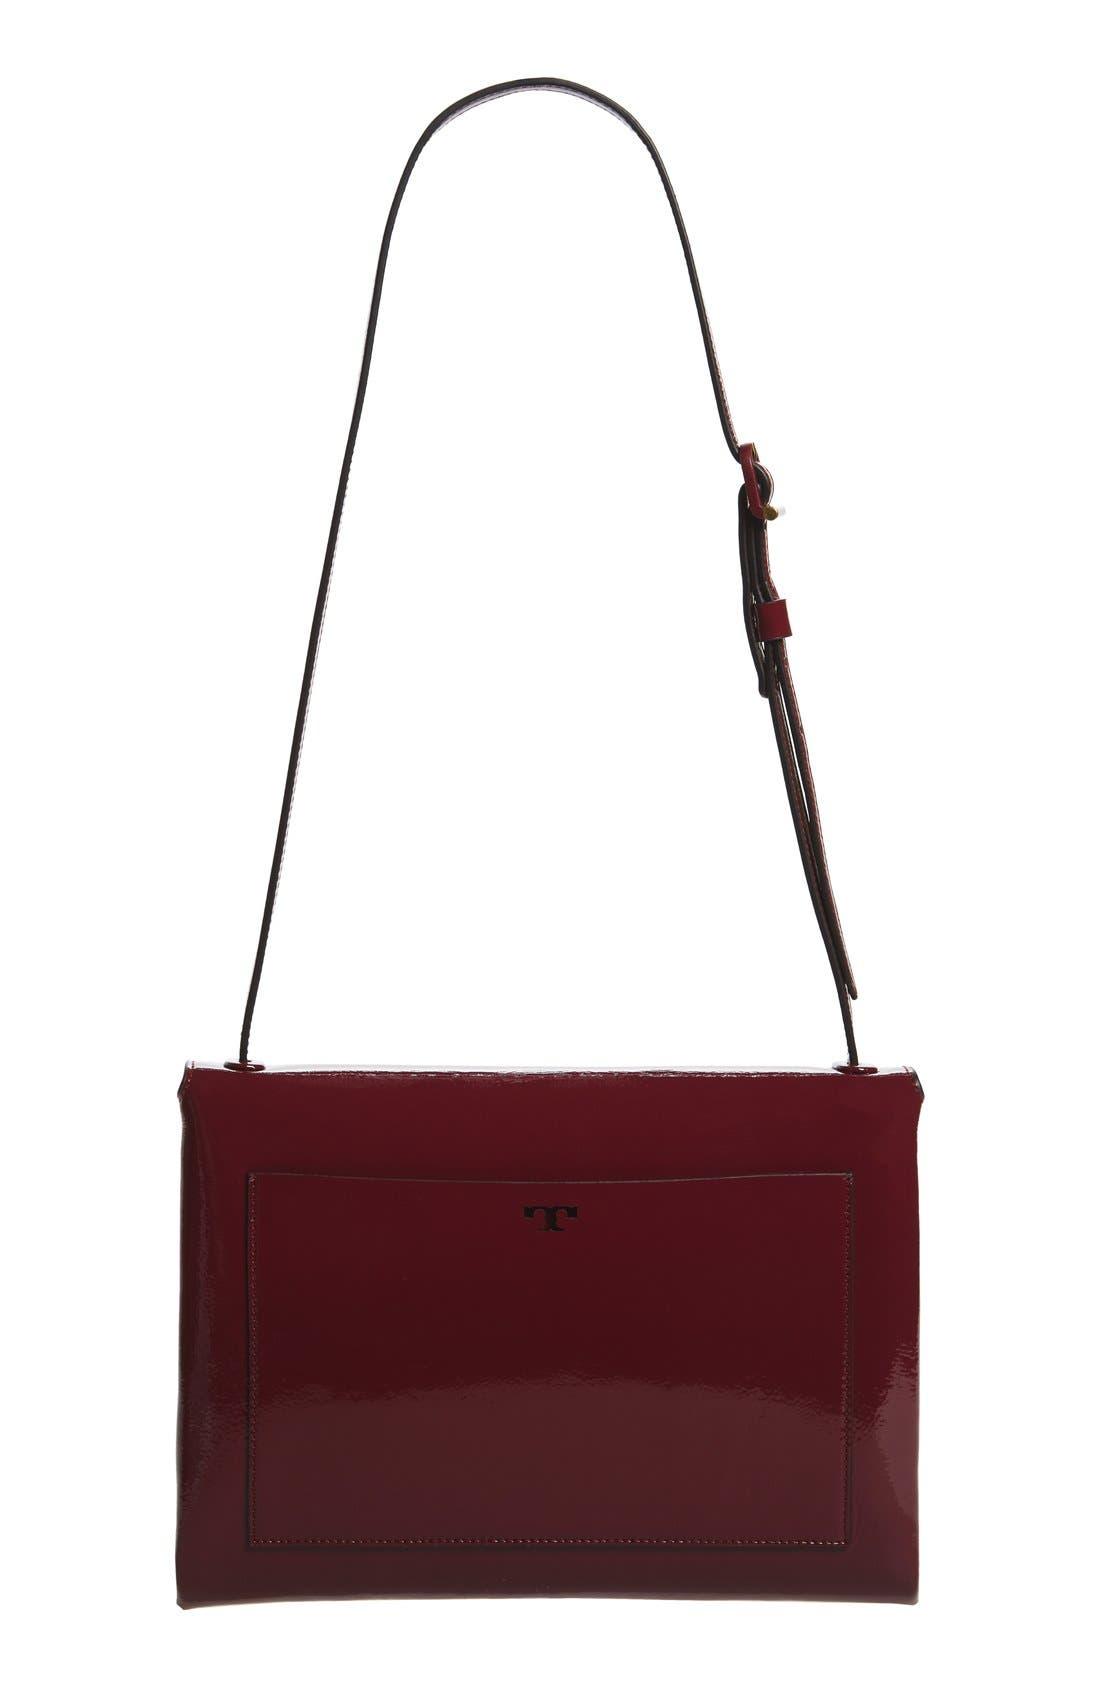 Alternate Image 3  - Tory Burch Patent Leather Convertible Shoulder Bag